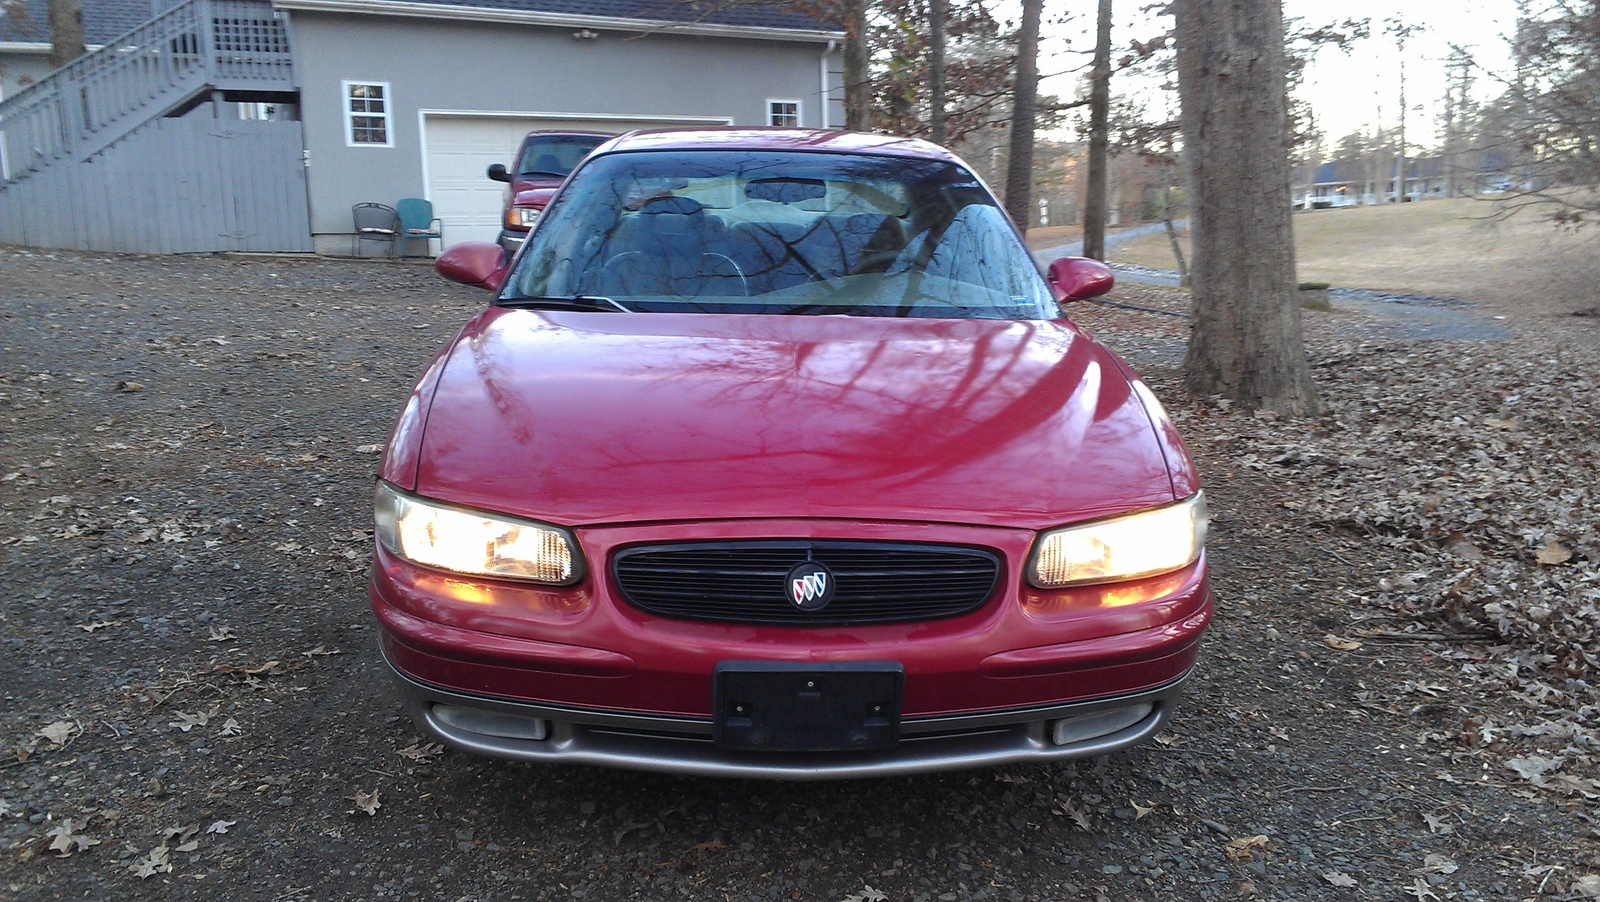 1997 Buick Regal - Pictures